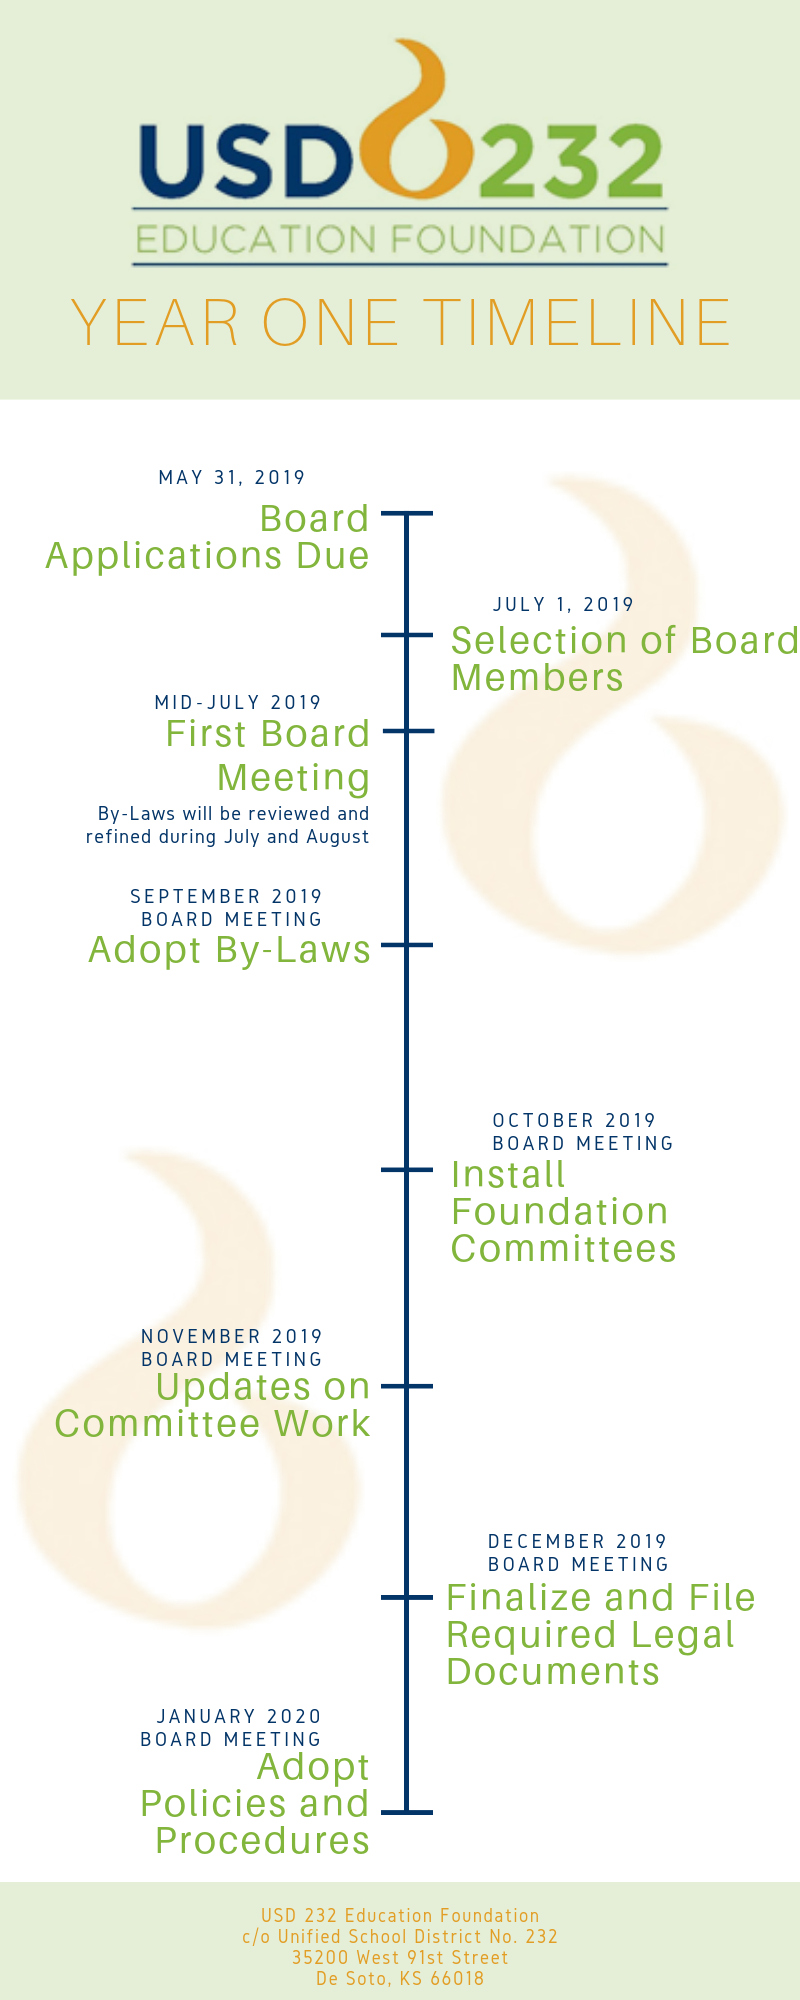 USD 232 Education Foundation First Year Timeline